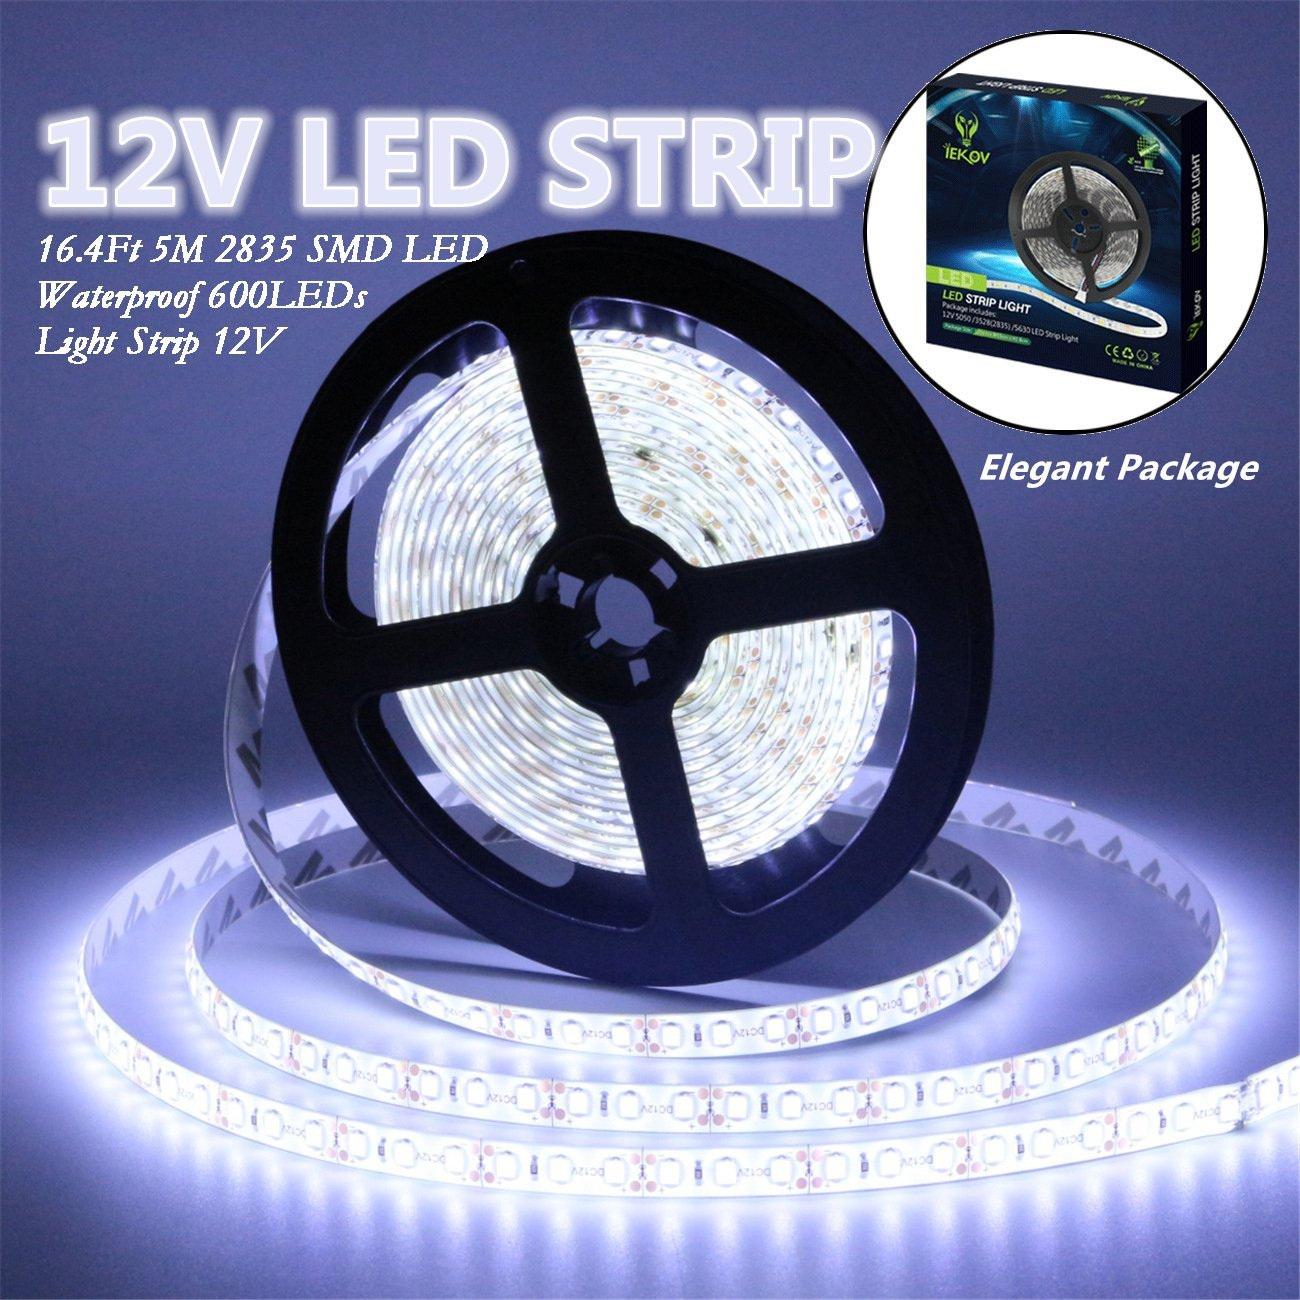 Led Strip Lights, IEKOV™ 2835 SMD 600LEDs Waterproof Flexible Xmas Decorative Lighting Strips, LED Tape, 5M 16.4Ft DC12V, 3 times brightness than SMD 3528 LED Light Strip (Cool White)